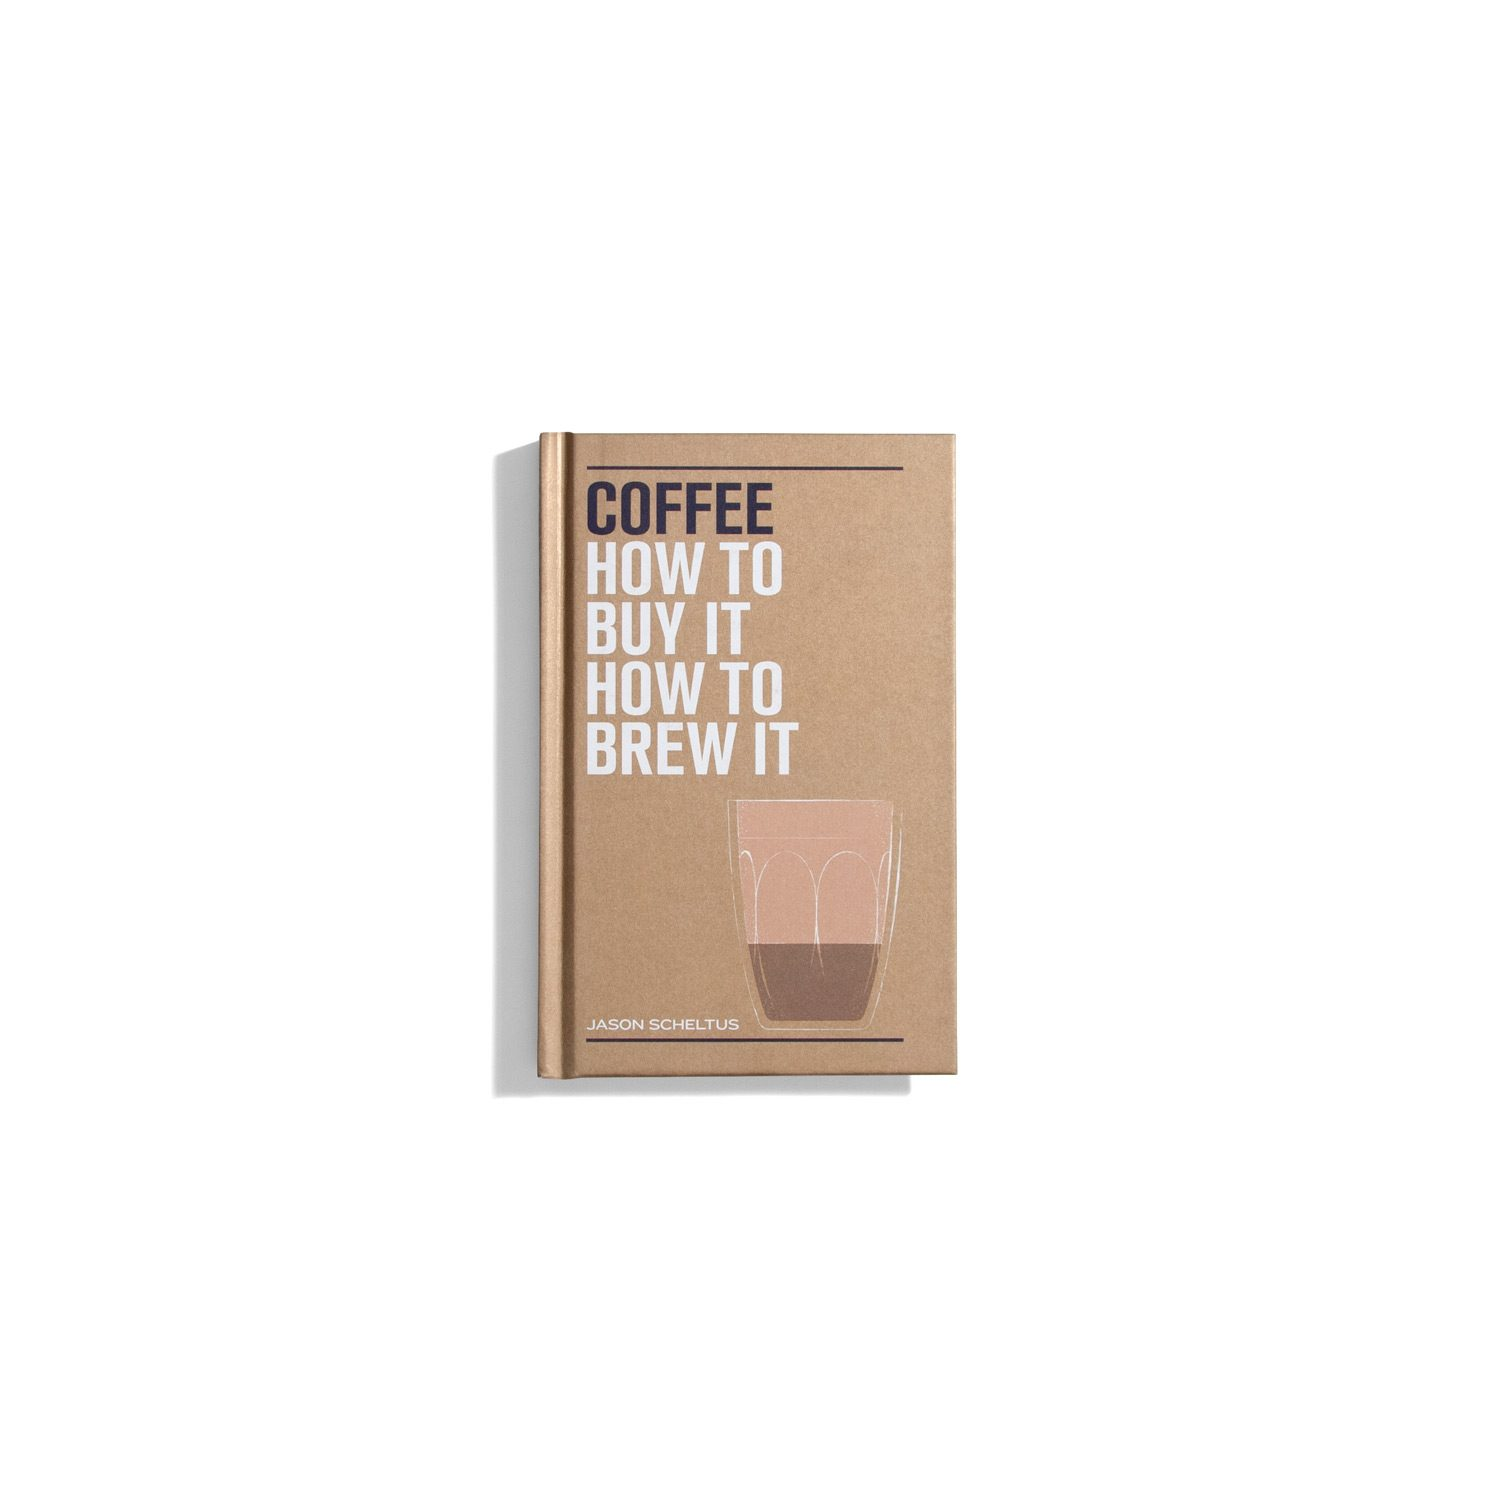 Coffee - How to buy it how to brew it